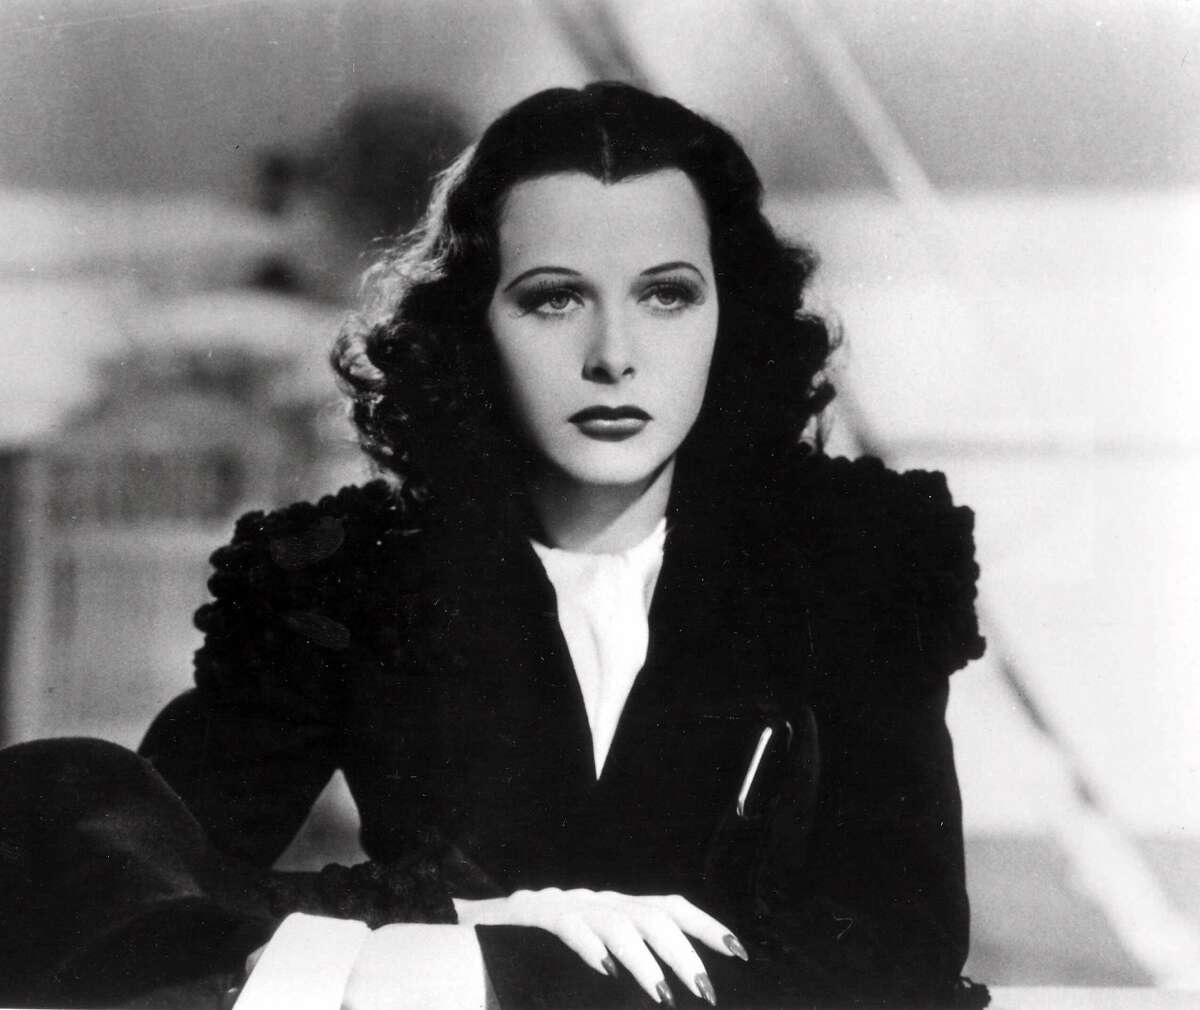 FILE--Austrian-born actress Hedy Lamarr is shown in this undated file photo. Lamarr's will was filed Friday March 10, 2000, in Seminole County Circuit Court in Sanford, Fla., and it contained a few surprises. In addition to Lamarr's son and daughter, the list of those she picked to share her wealth included her personal secretary, a California engineer she had never met and Altamonte Springs Police Lt. Chuck Stansel. (AP Photo/Significa, File)